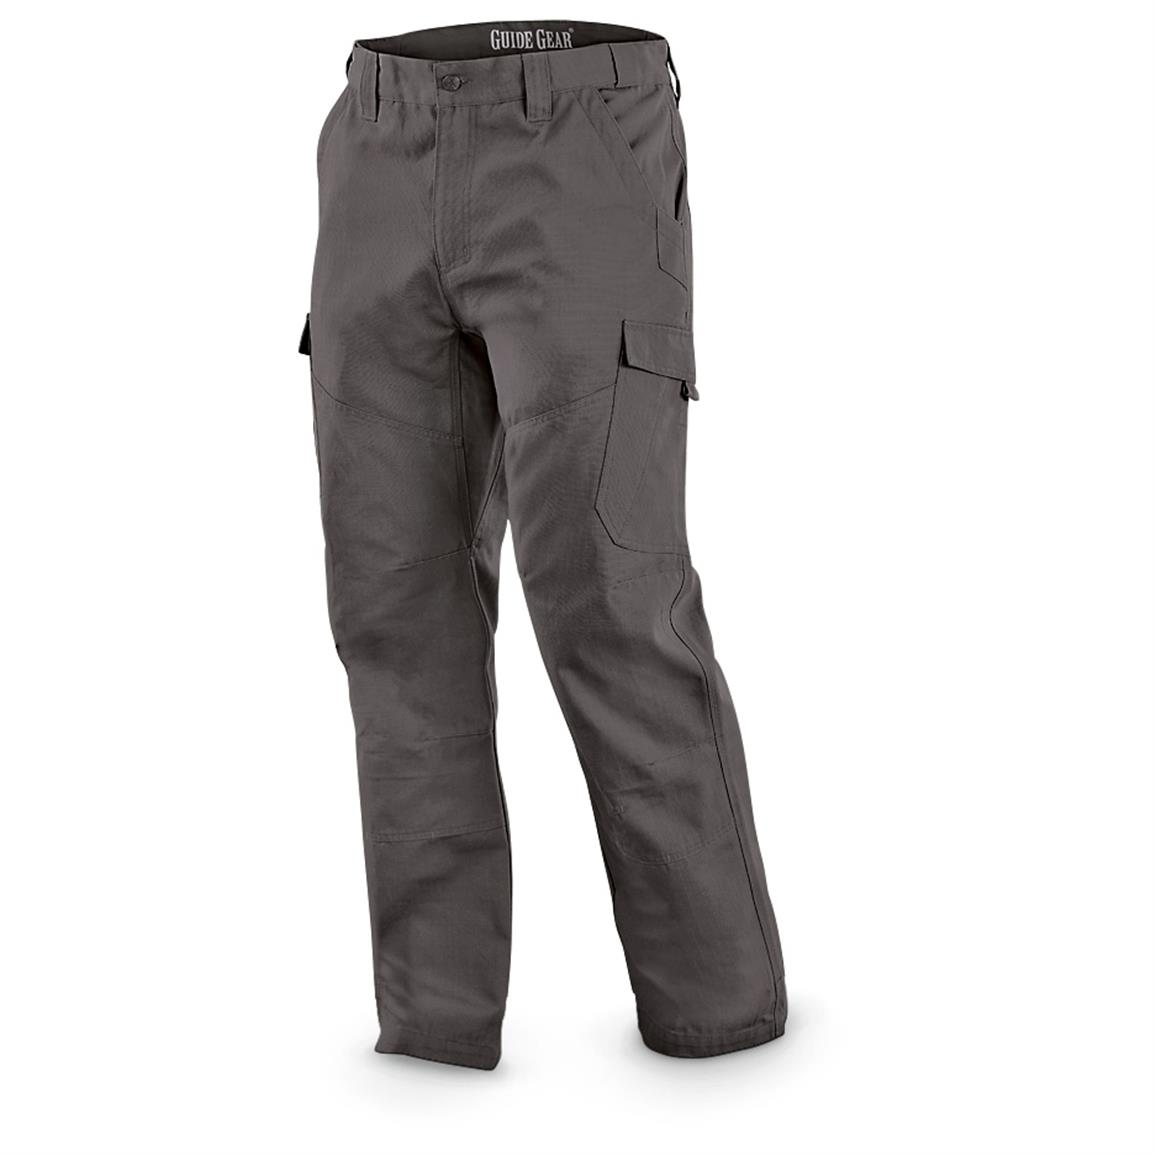 Guide Gear Men's Ripstop Cargo Work Pants, Graphite Gray